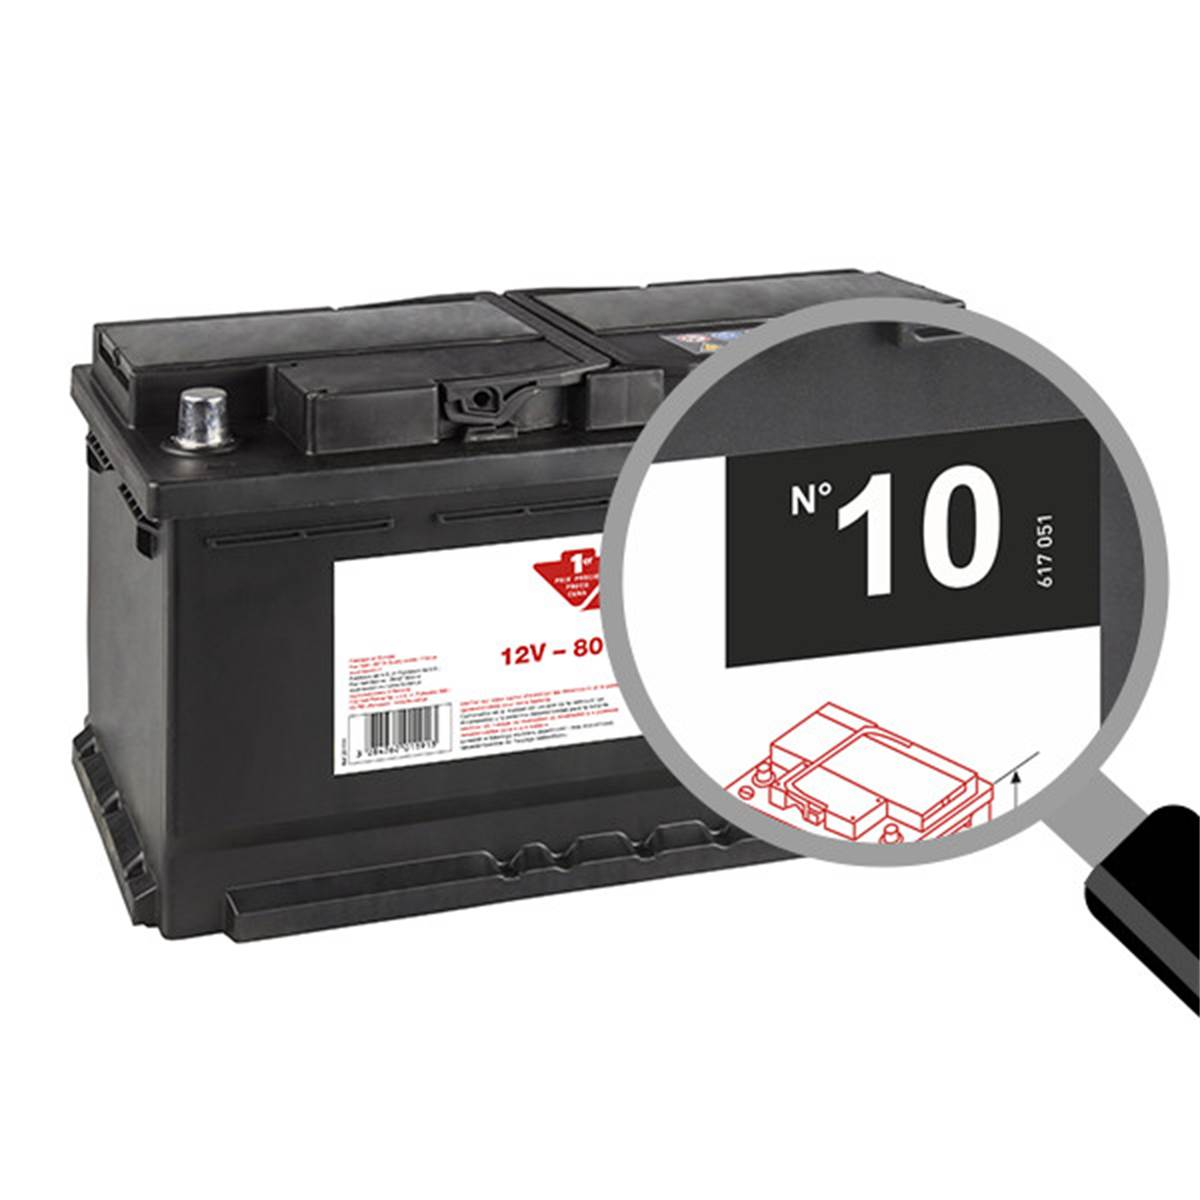 Batterie voiture Contact n°10 - 80Ah / 700A - 12V